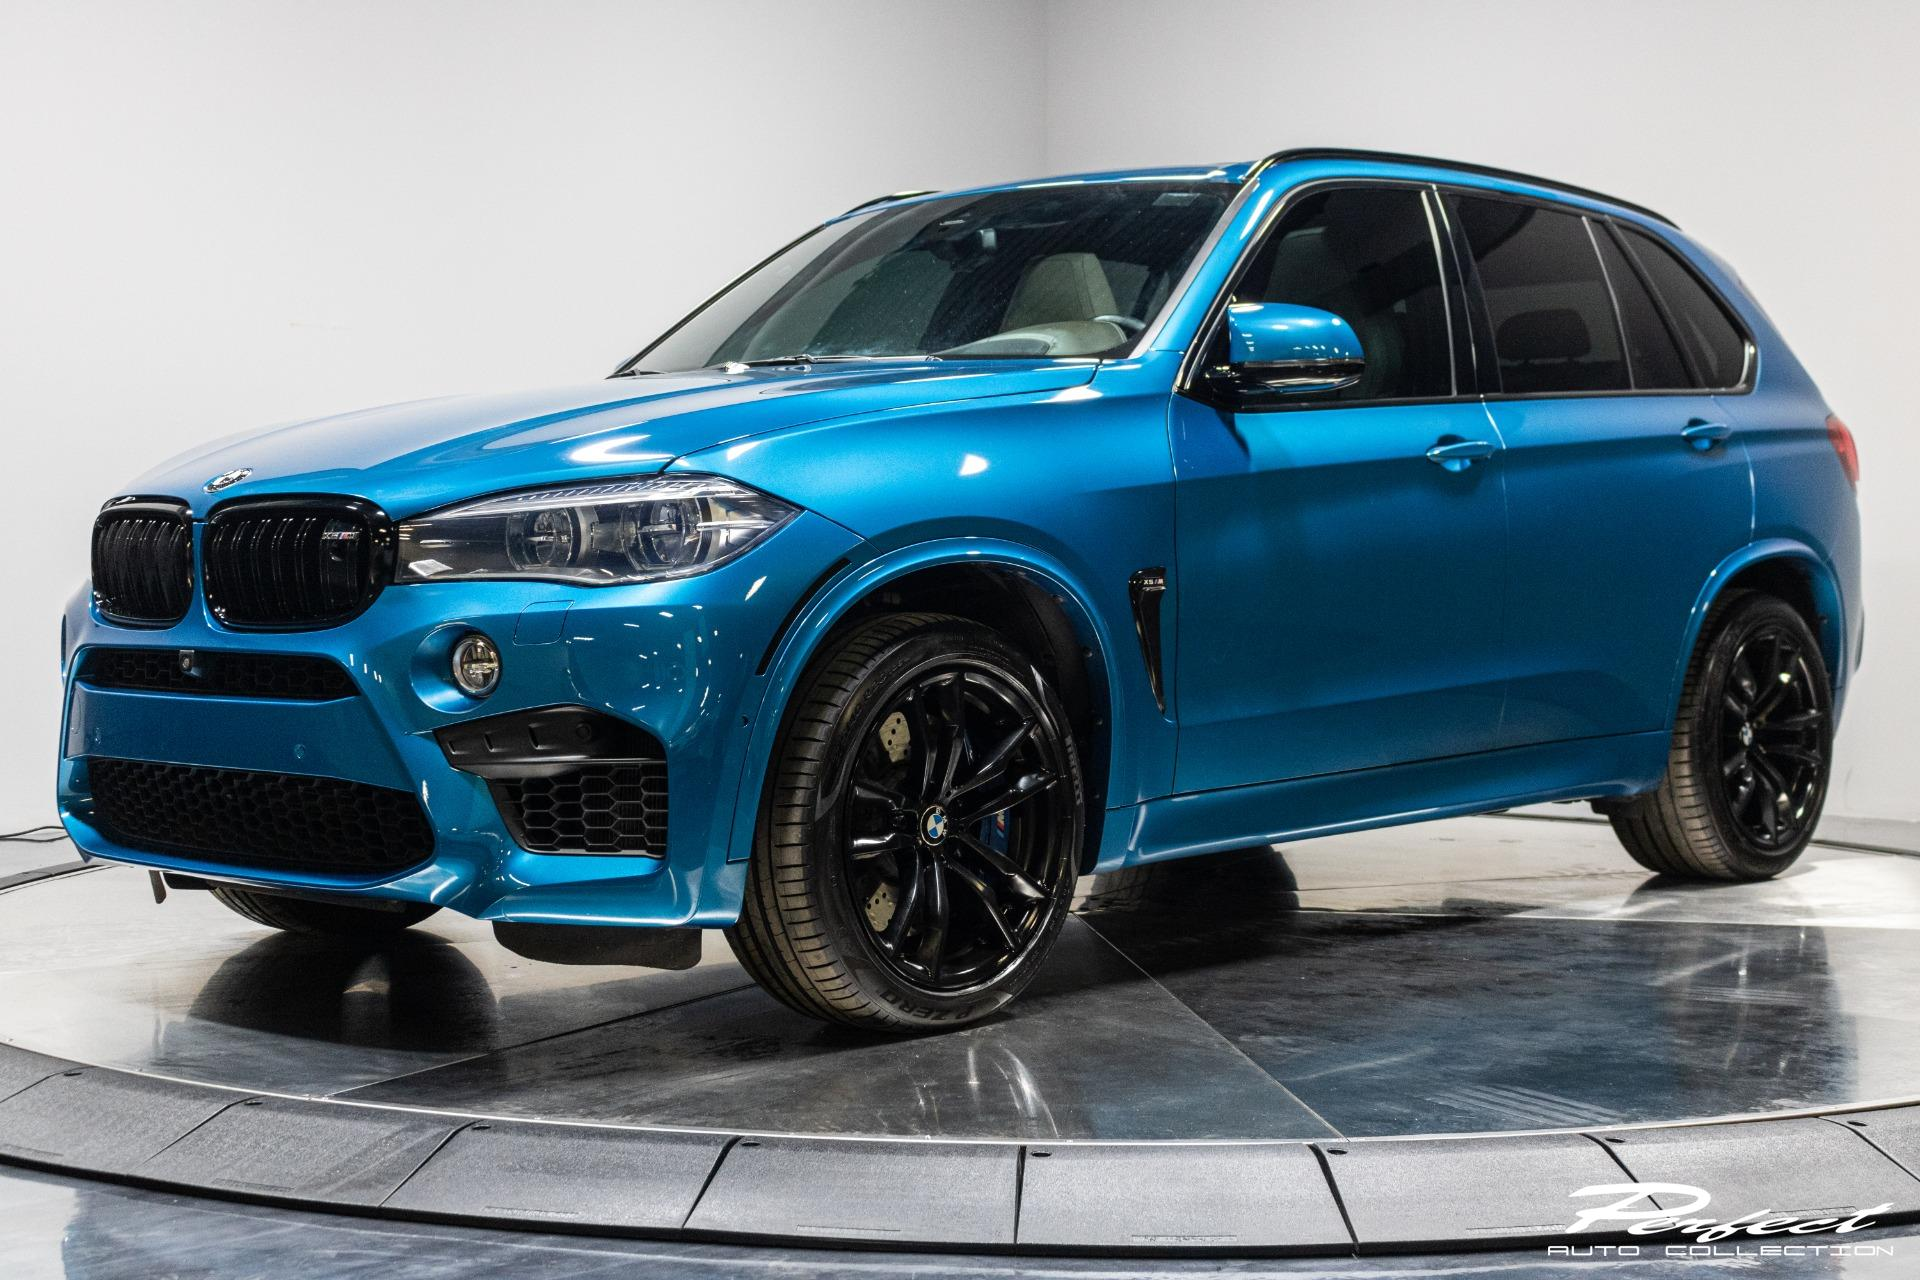 Used 2017 BMW X5 M for sale Sold at Perfect Auto Collection in Akron OH 44310 1